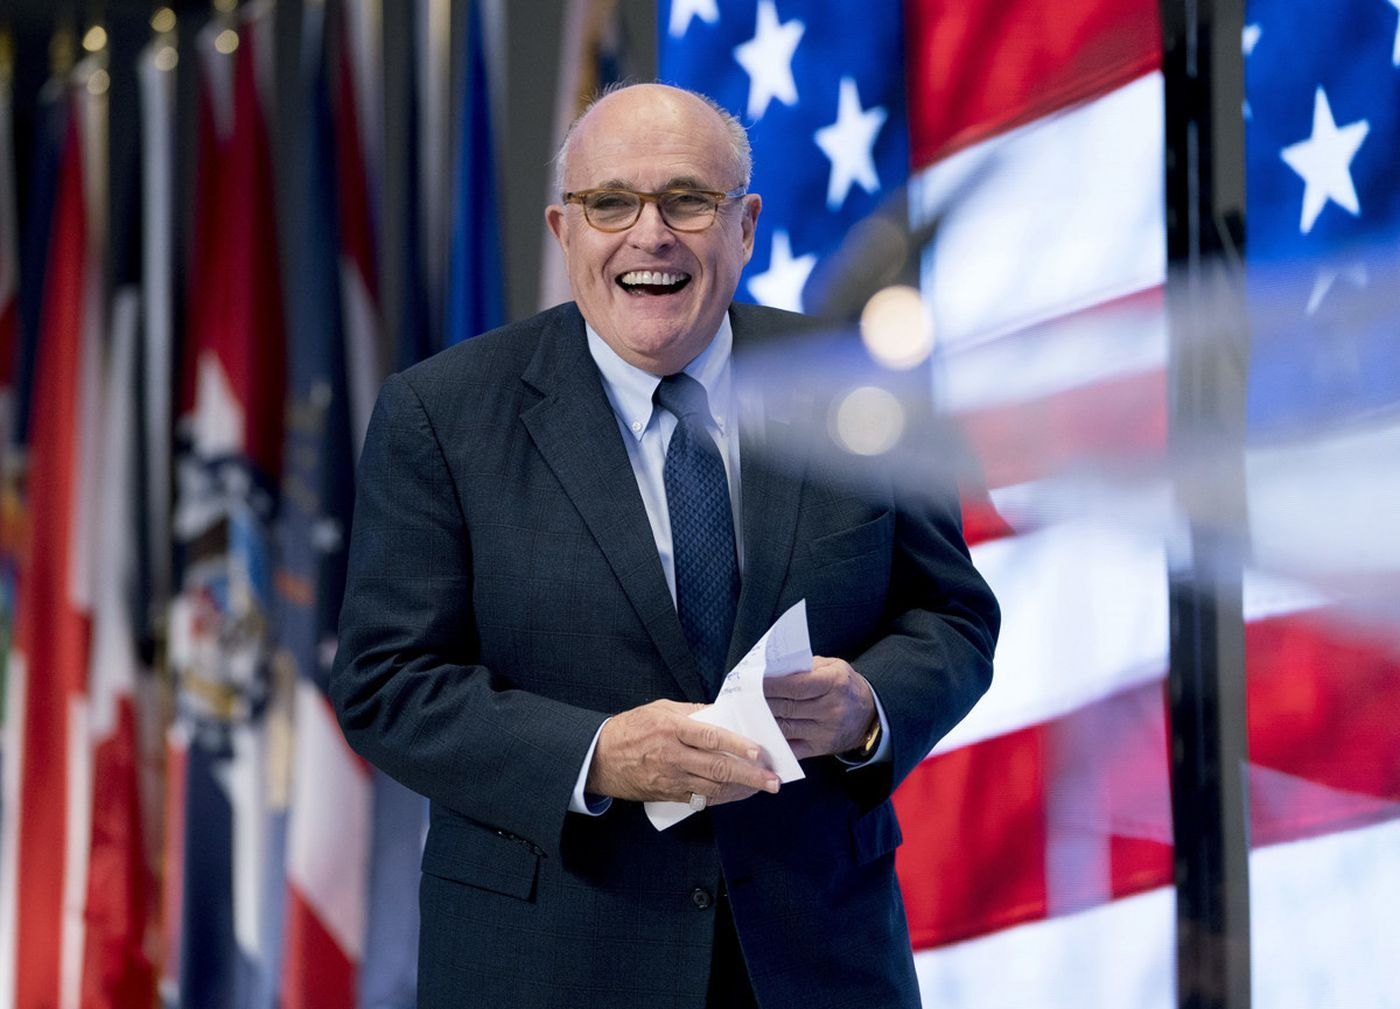 Rudy Giuliani Says Trump Probably Does Have The Power To Pardon Himself But Won T Do It Rudy Giuliani Iran Today Trump